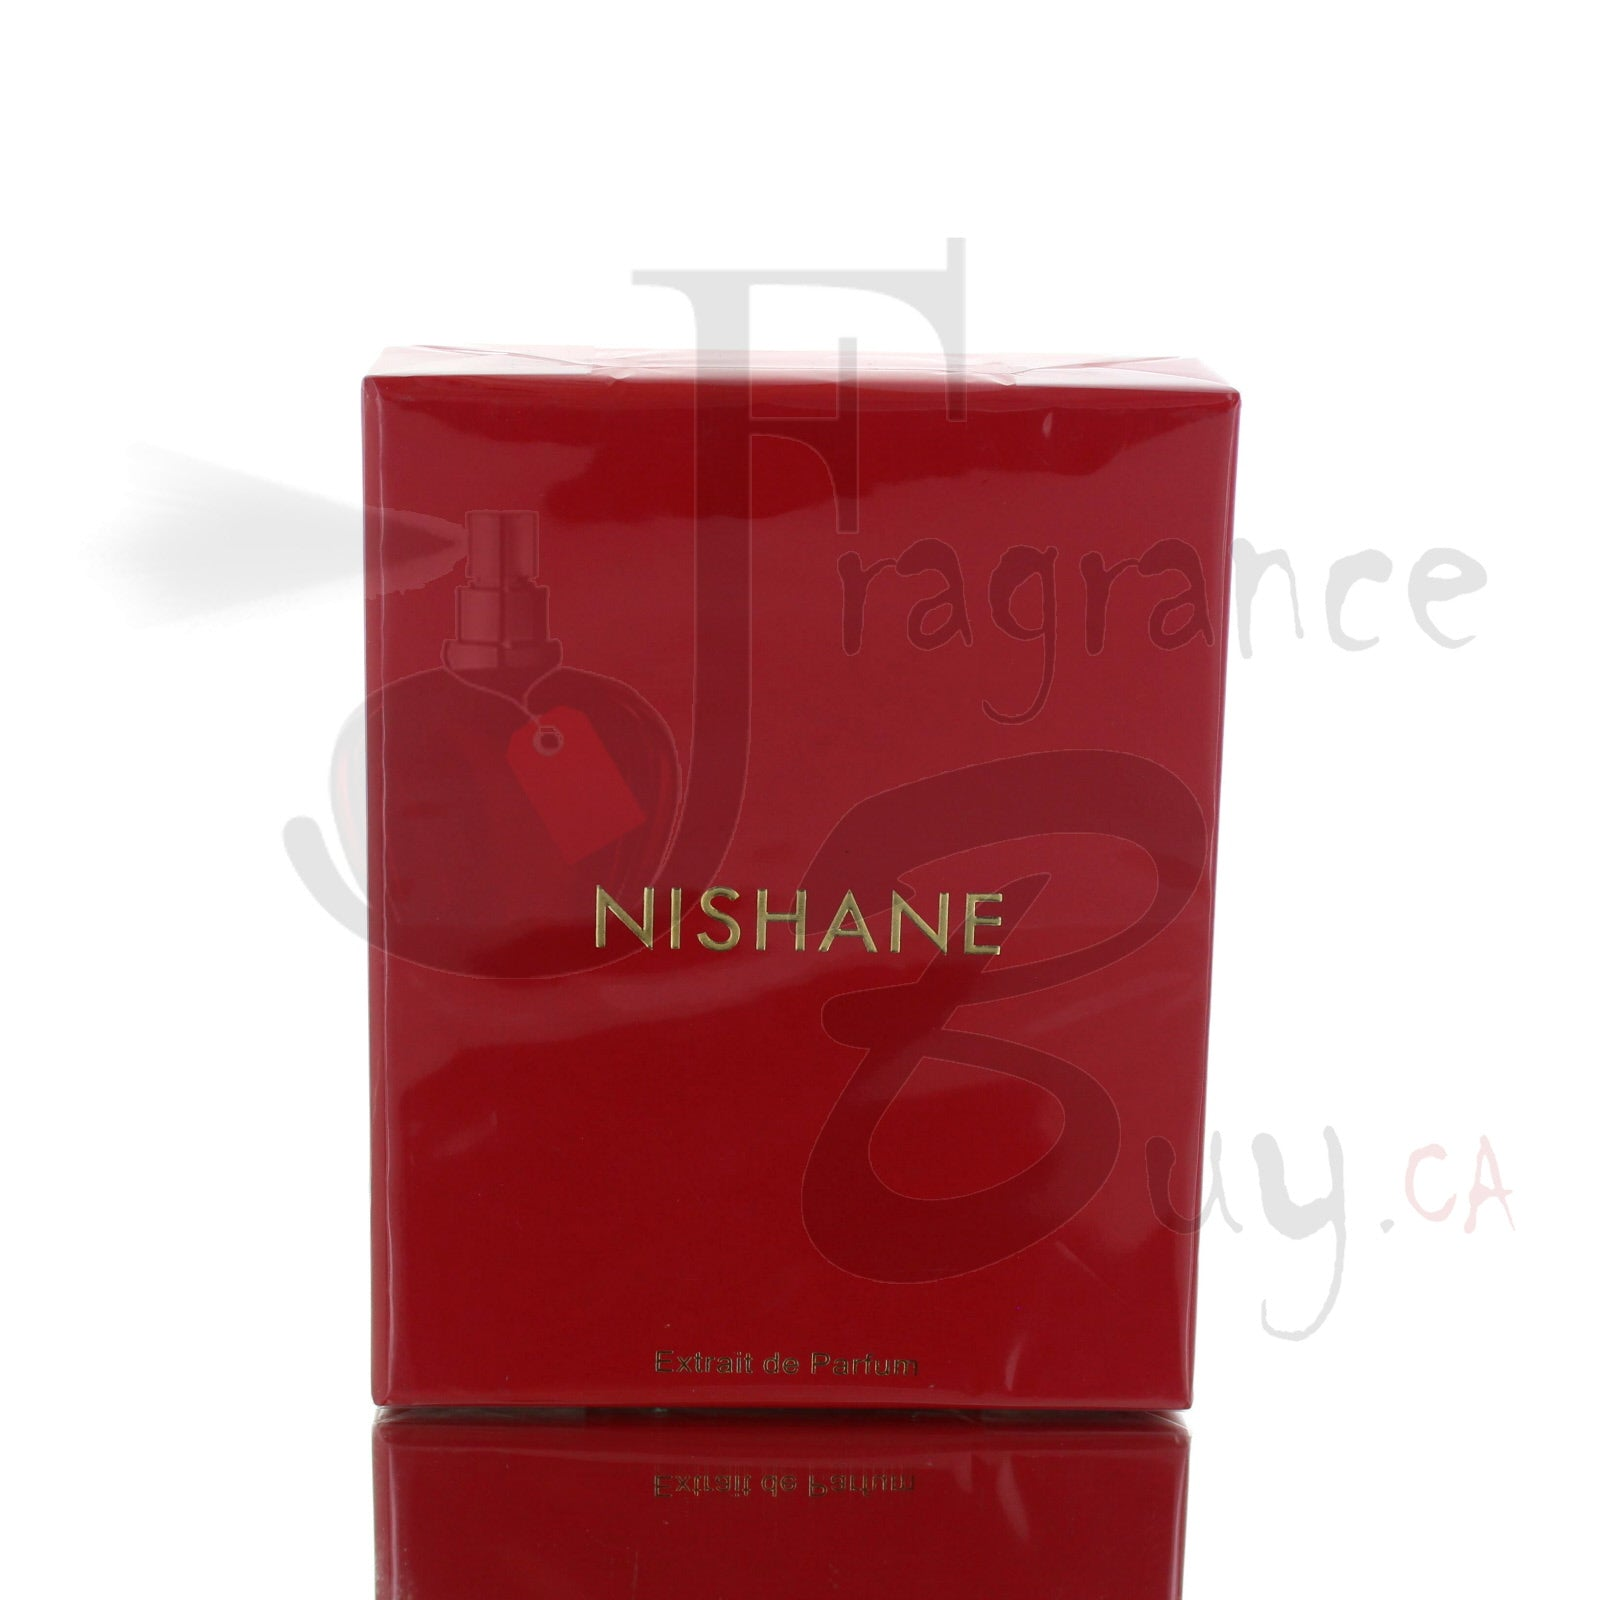 Nishane Duftbluten For Man/Woman